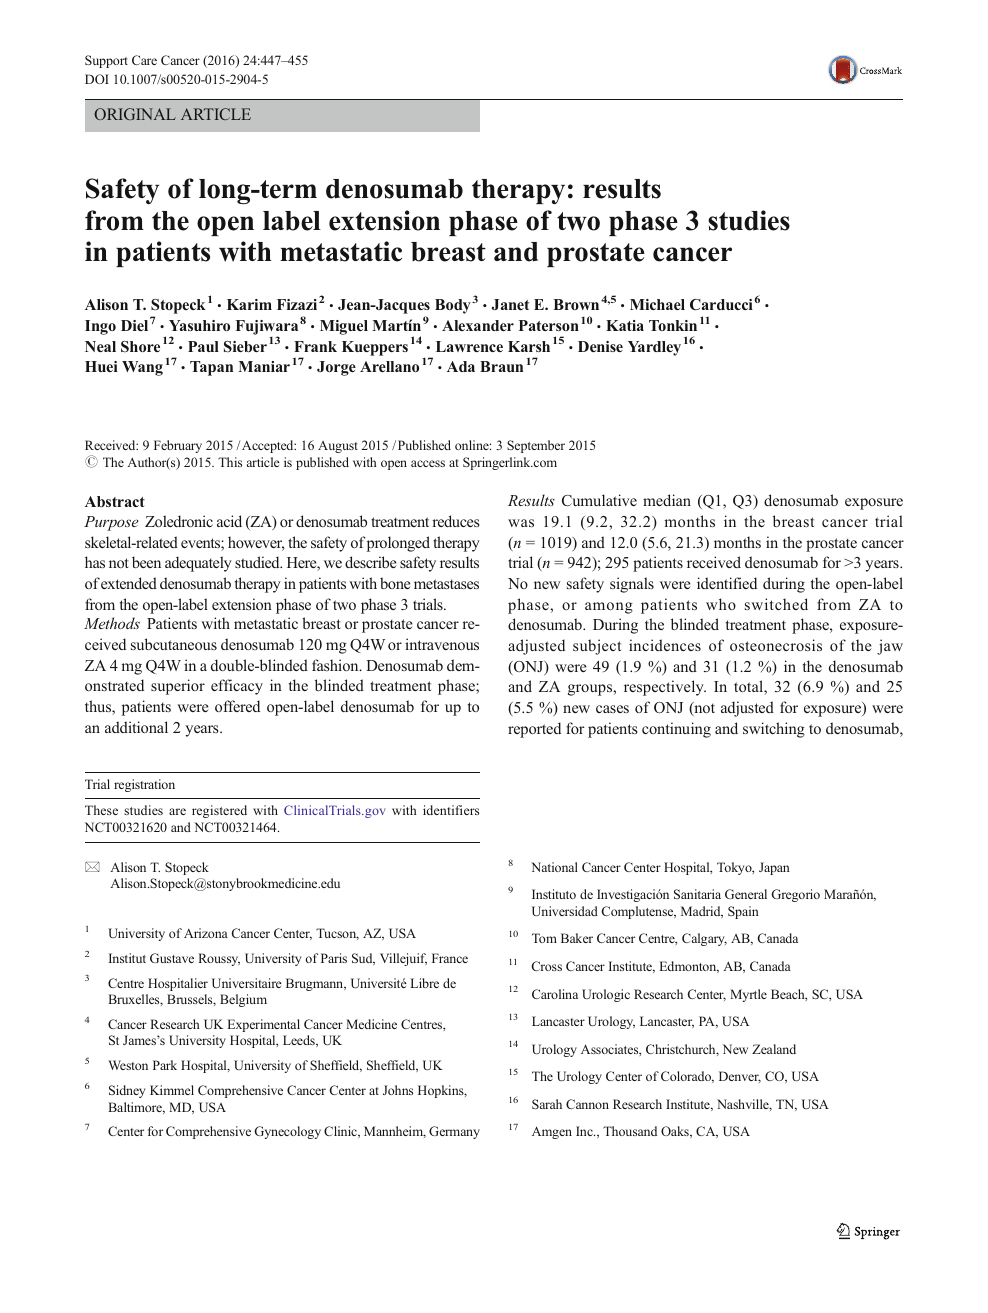 Safety of long-term denosumab therapy: results from the open